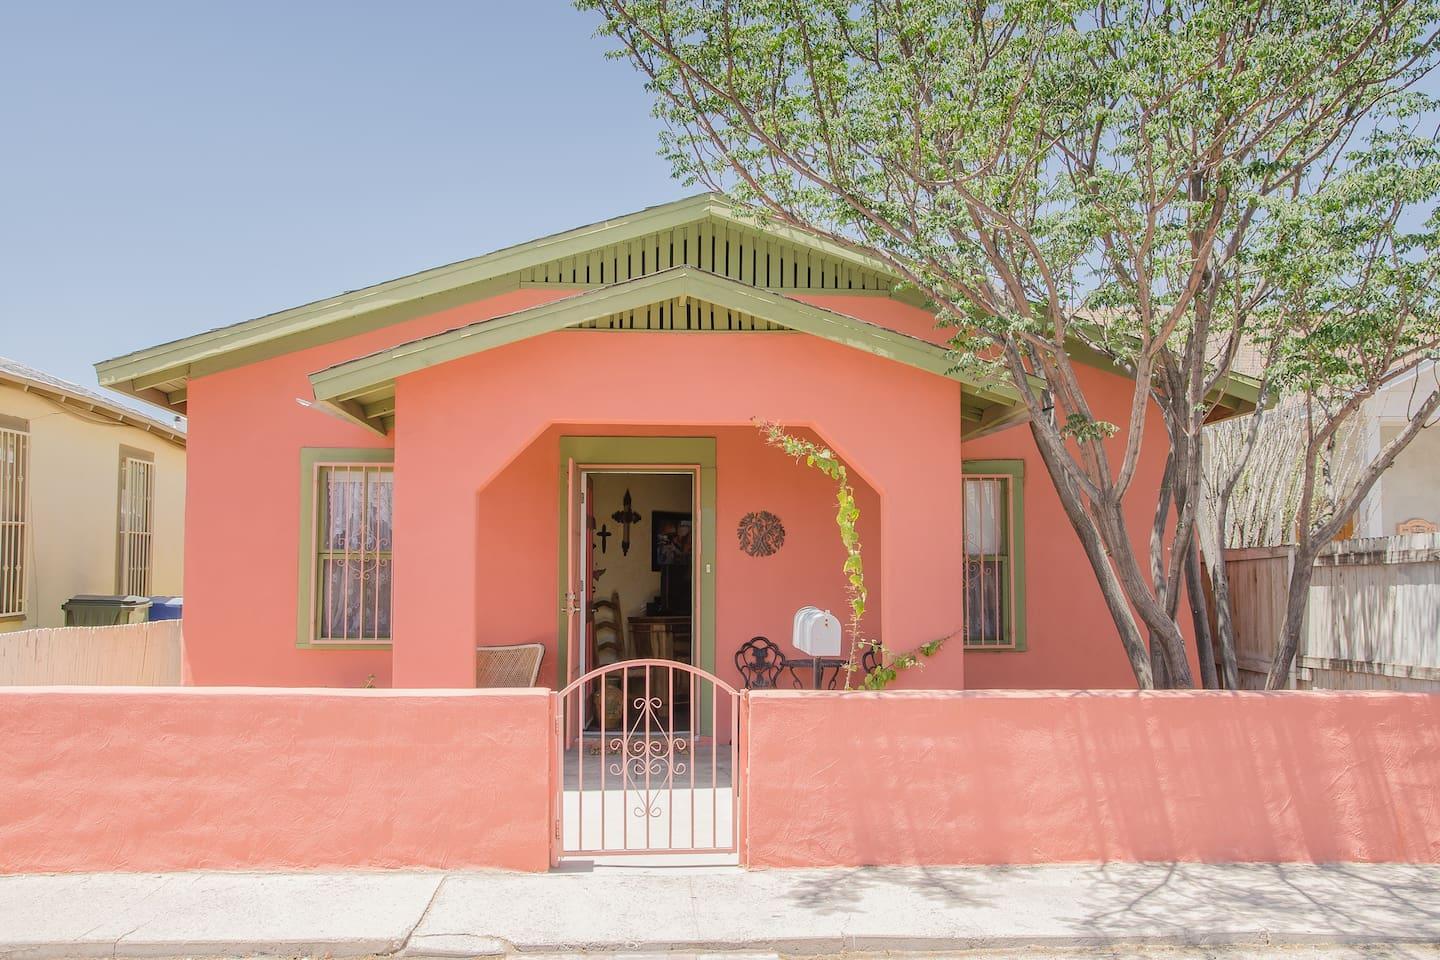 View of our Casita from the street.